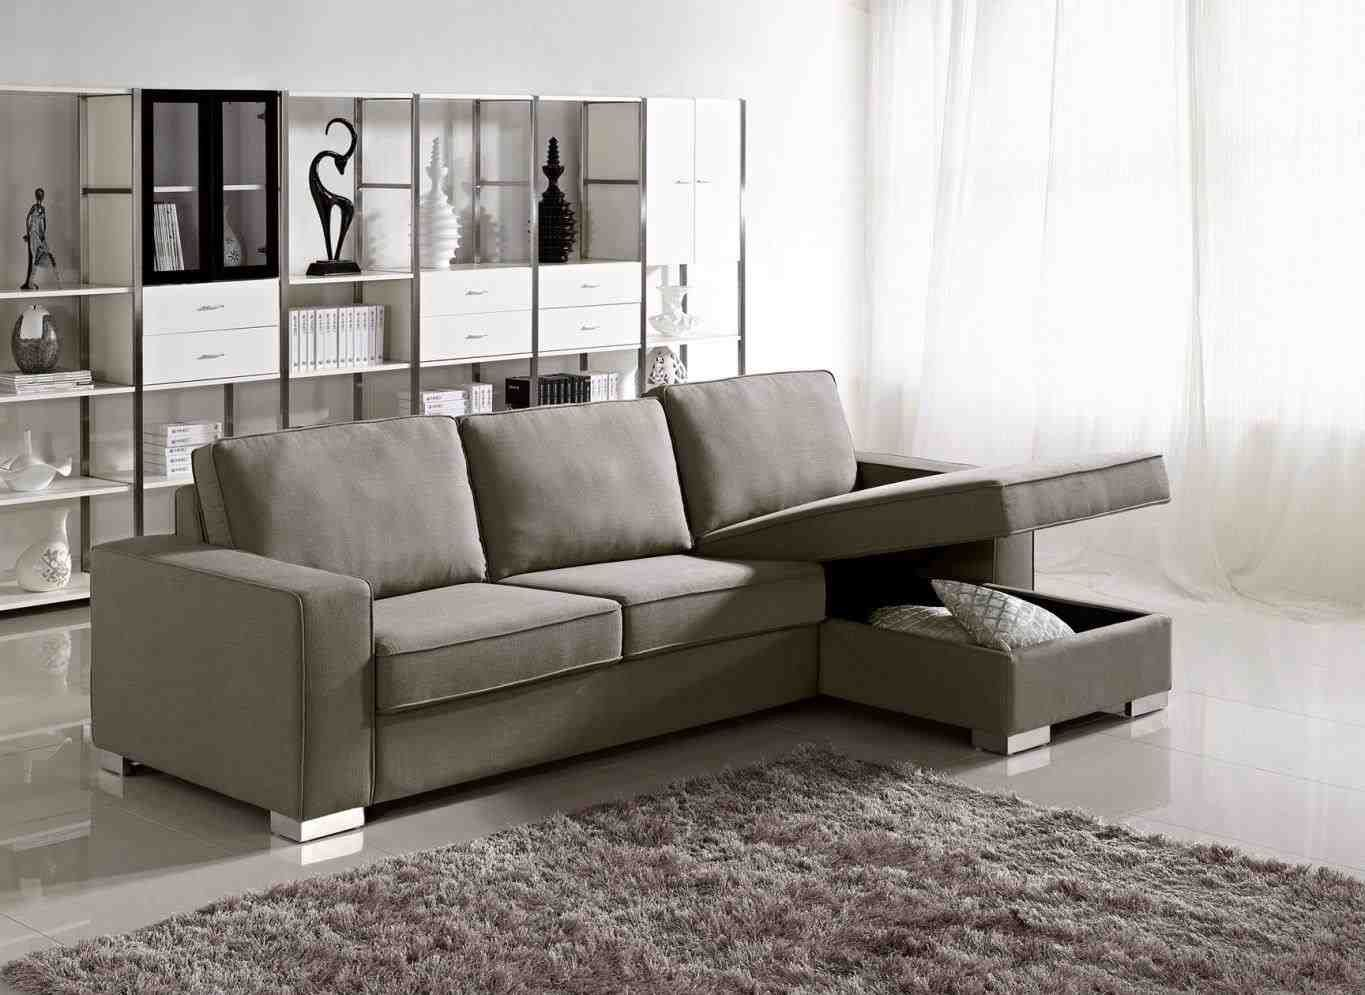 Cheap Sectionals Canada   Affordable Sectional Couches Full Size Of Sofas  For Cheap New Furniture Splendid With Canada: Full. Full Size Of Sofas:ikea  ...